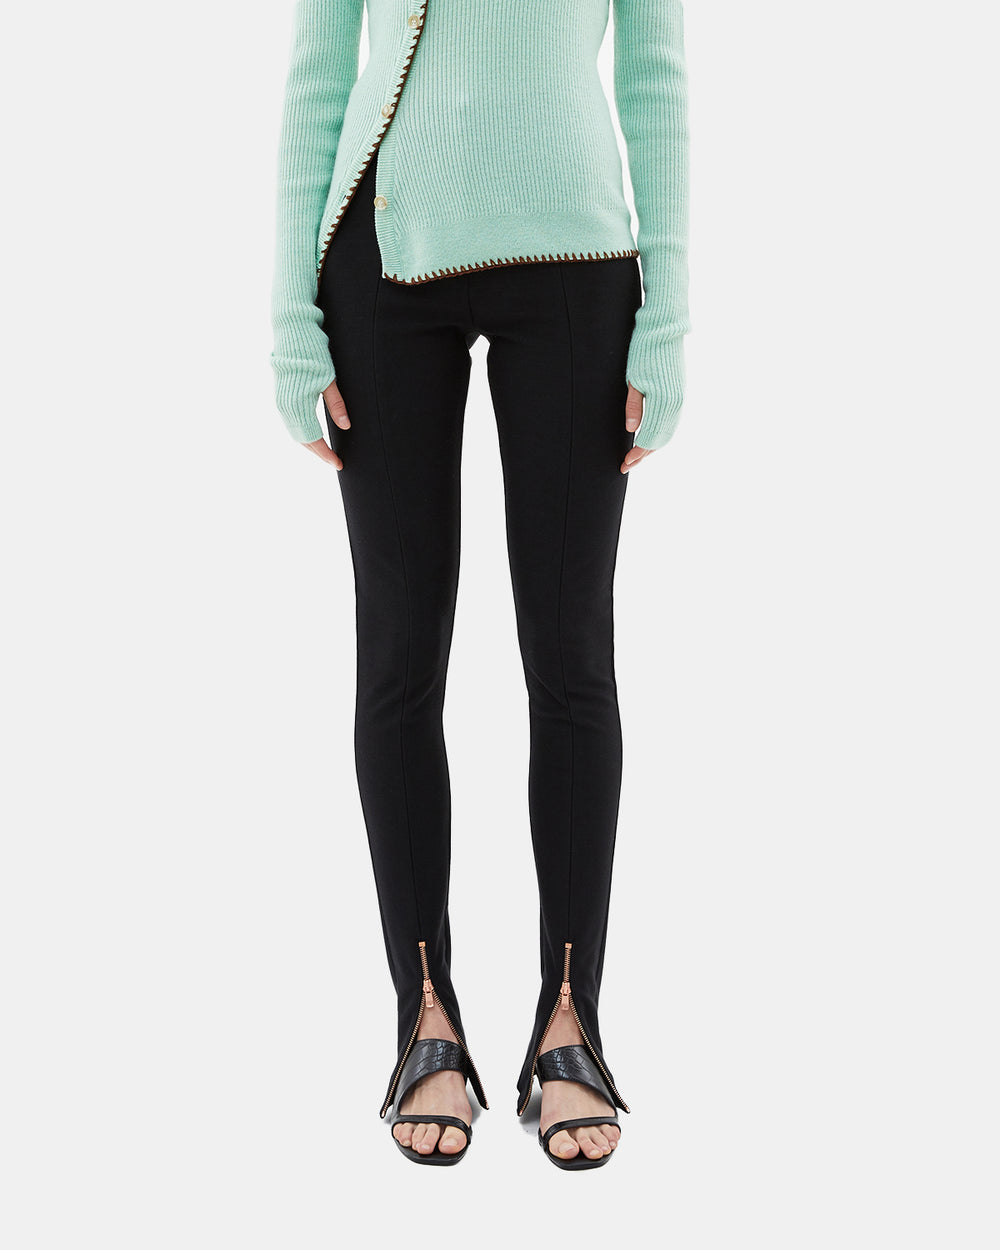 Andersson Bell - Women's Stretch Jersey Zipper Flared Pants (Black)